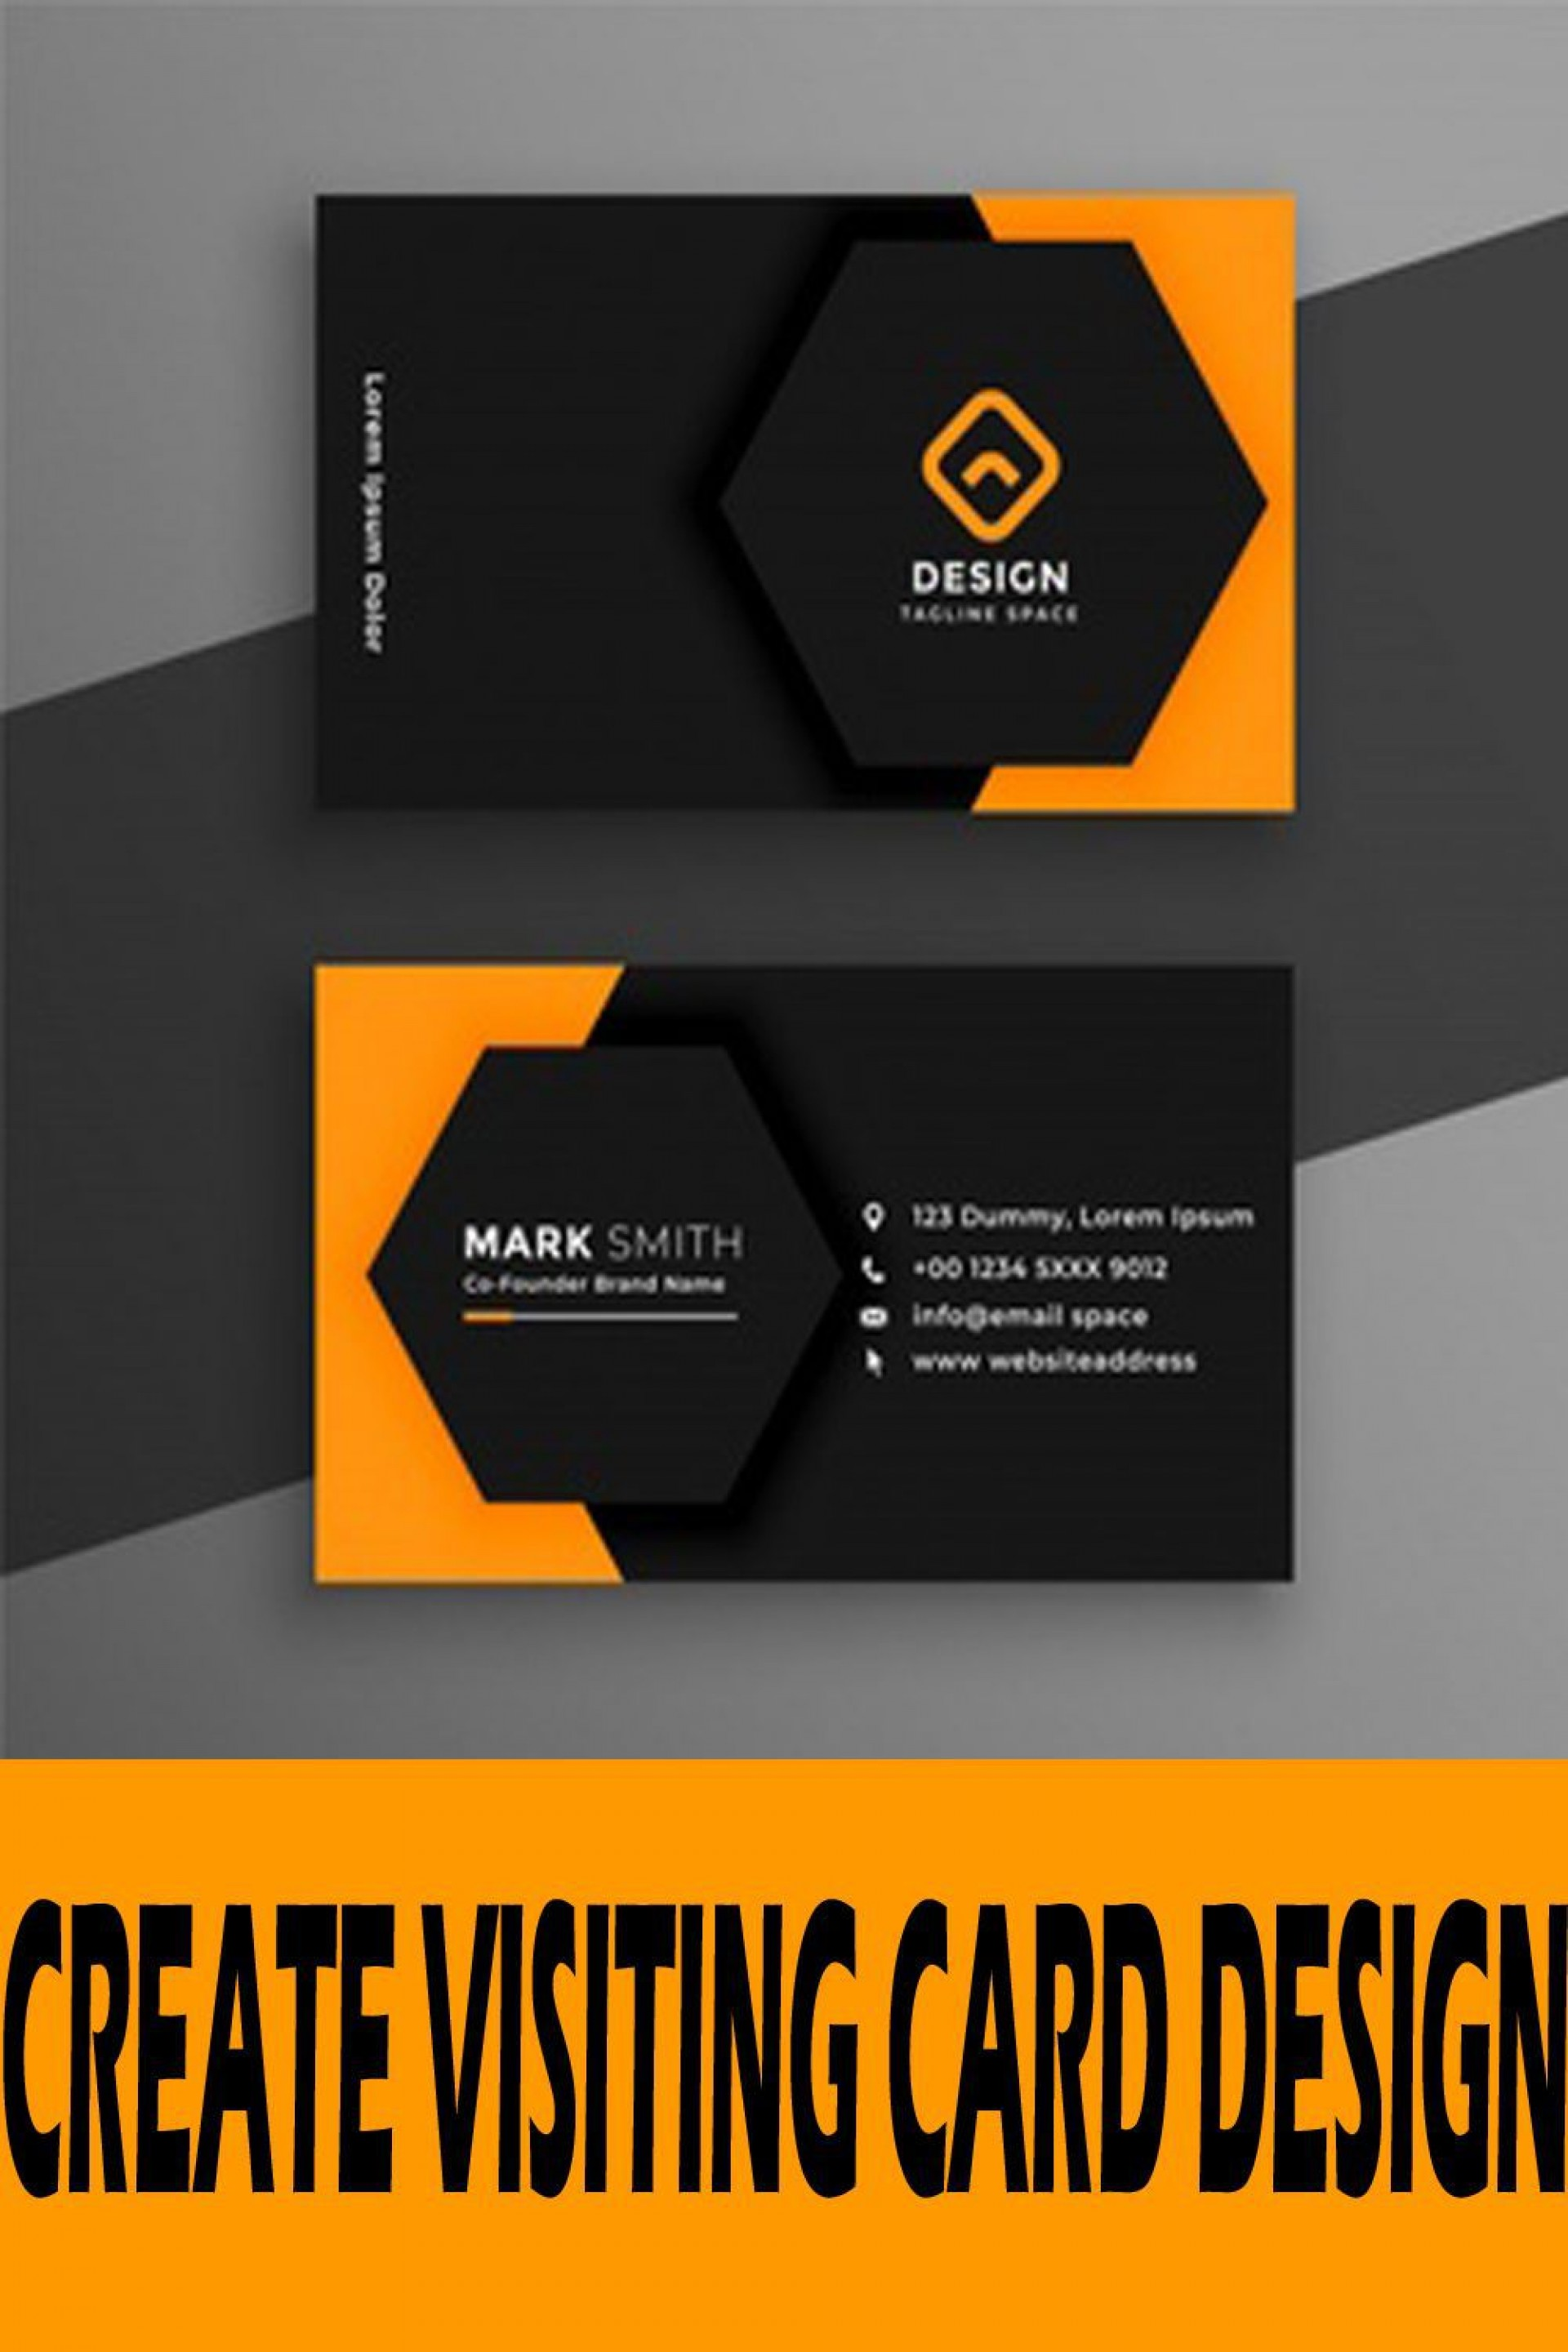 000 Staggering Blank Busines Card Template Psd Free Design  Photoshop Download1920